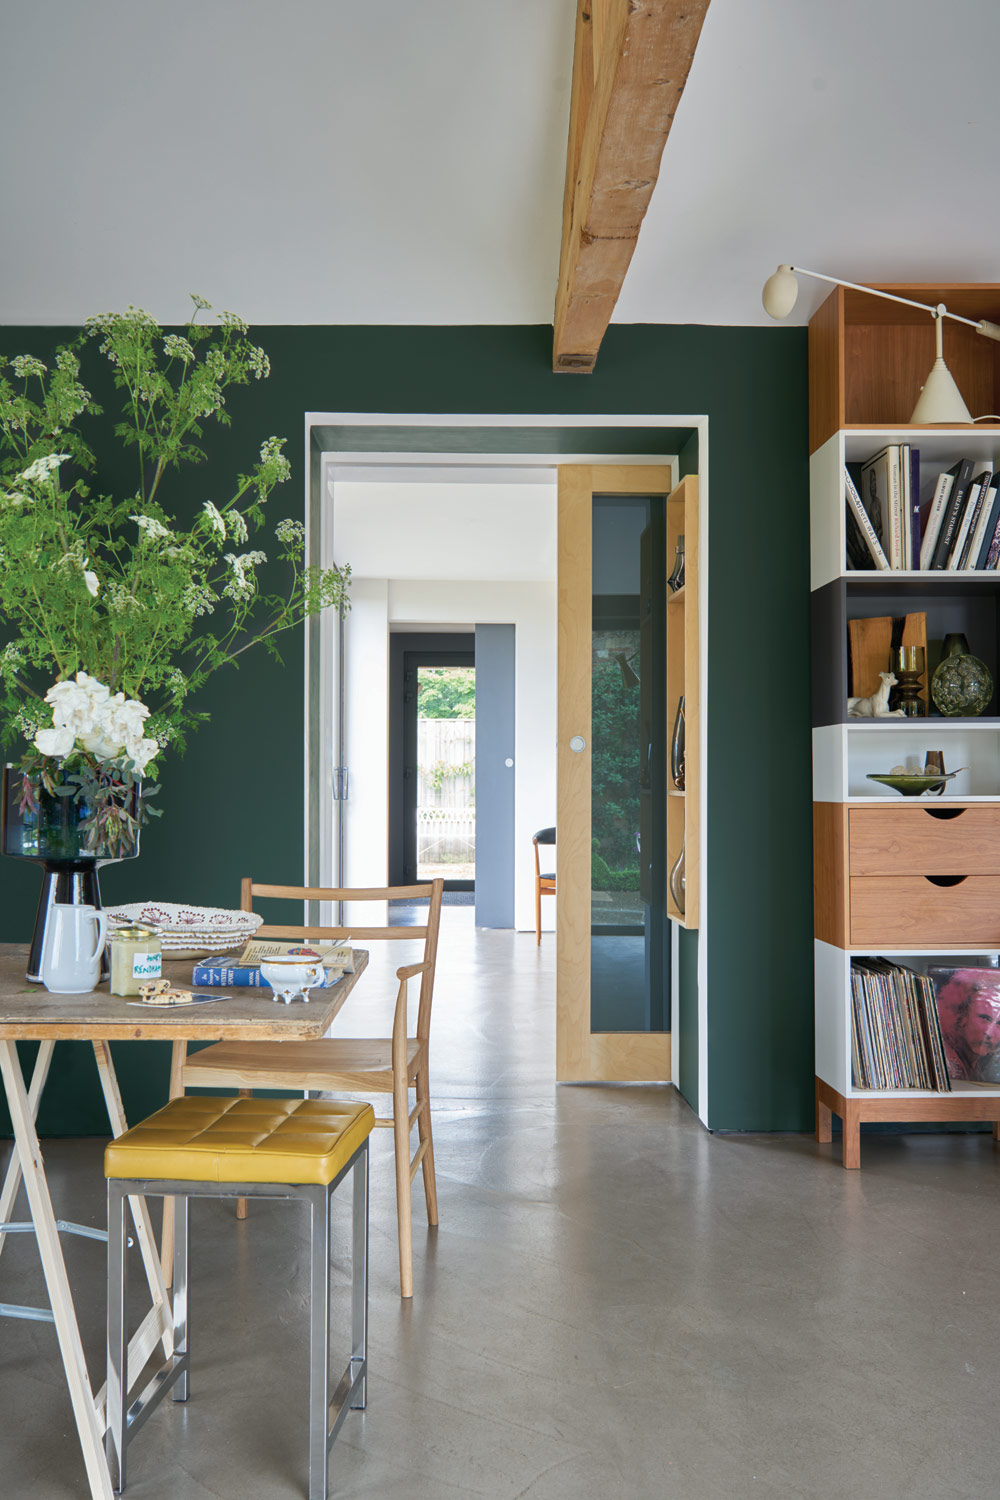 4. Farrow & Ball - Studio Green - Next in our roundup of paint trends is the darkest of Farrow & Ball's green hues, Studio Green. We love the contemporary update of this typically heritage hue, one that will create depth in contemporary spaces and also bring to life period features. Although the darkness of this colour may initially be overwhelming, Farrow & Ball explain that the rich pigments respond extraordinarily to different lights in the home, appearing lighter and greener in brighter situations and almost black in darker corners and less well lit spaces. This ensures that it will never look flat or too harsh in tone, and we love it! £43.50 for 2.5L Estate Emulsionwww.farrow-ball.com